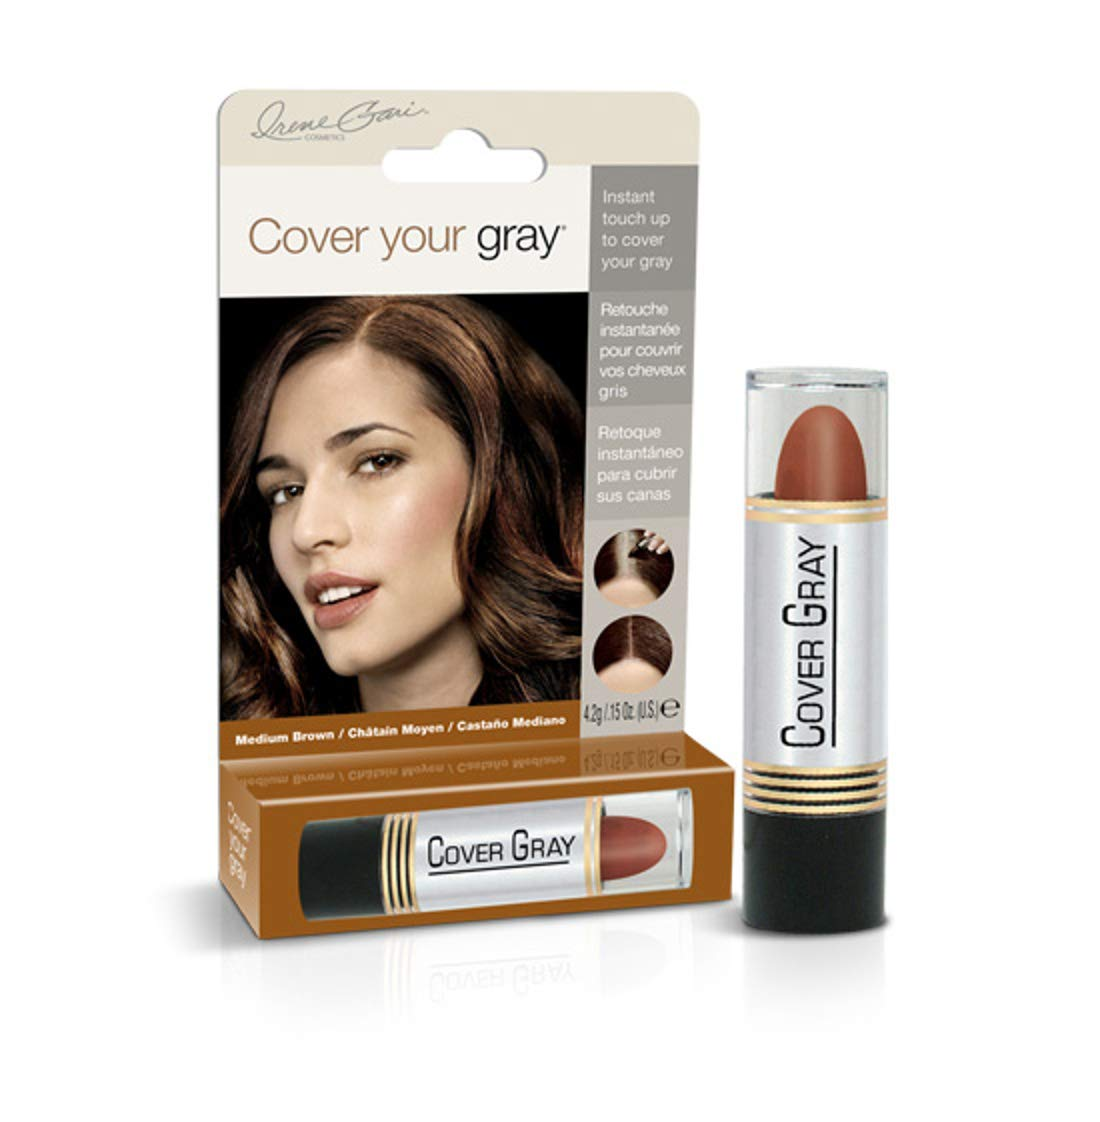 Cover YOur Gray For Women Medium Brown-Lipstick Irene Gari